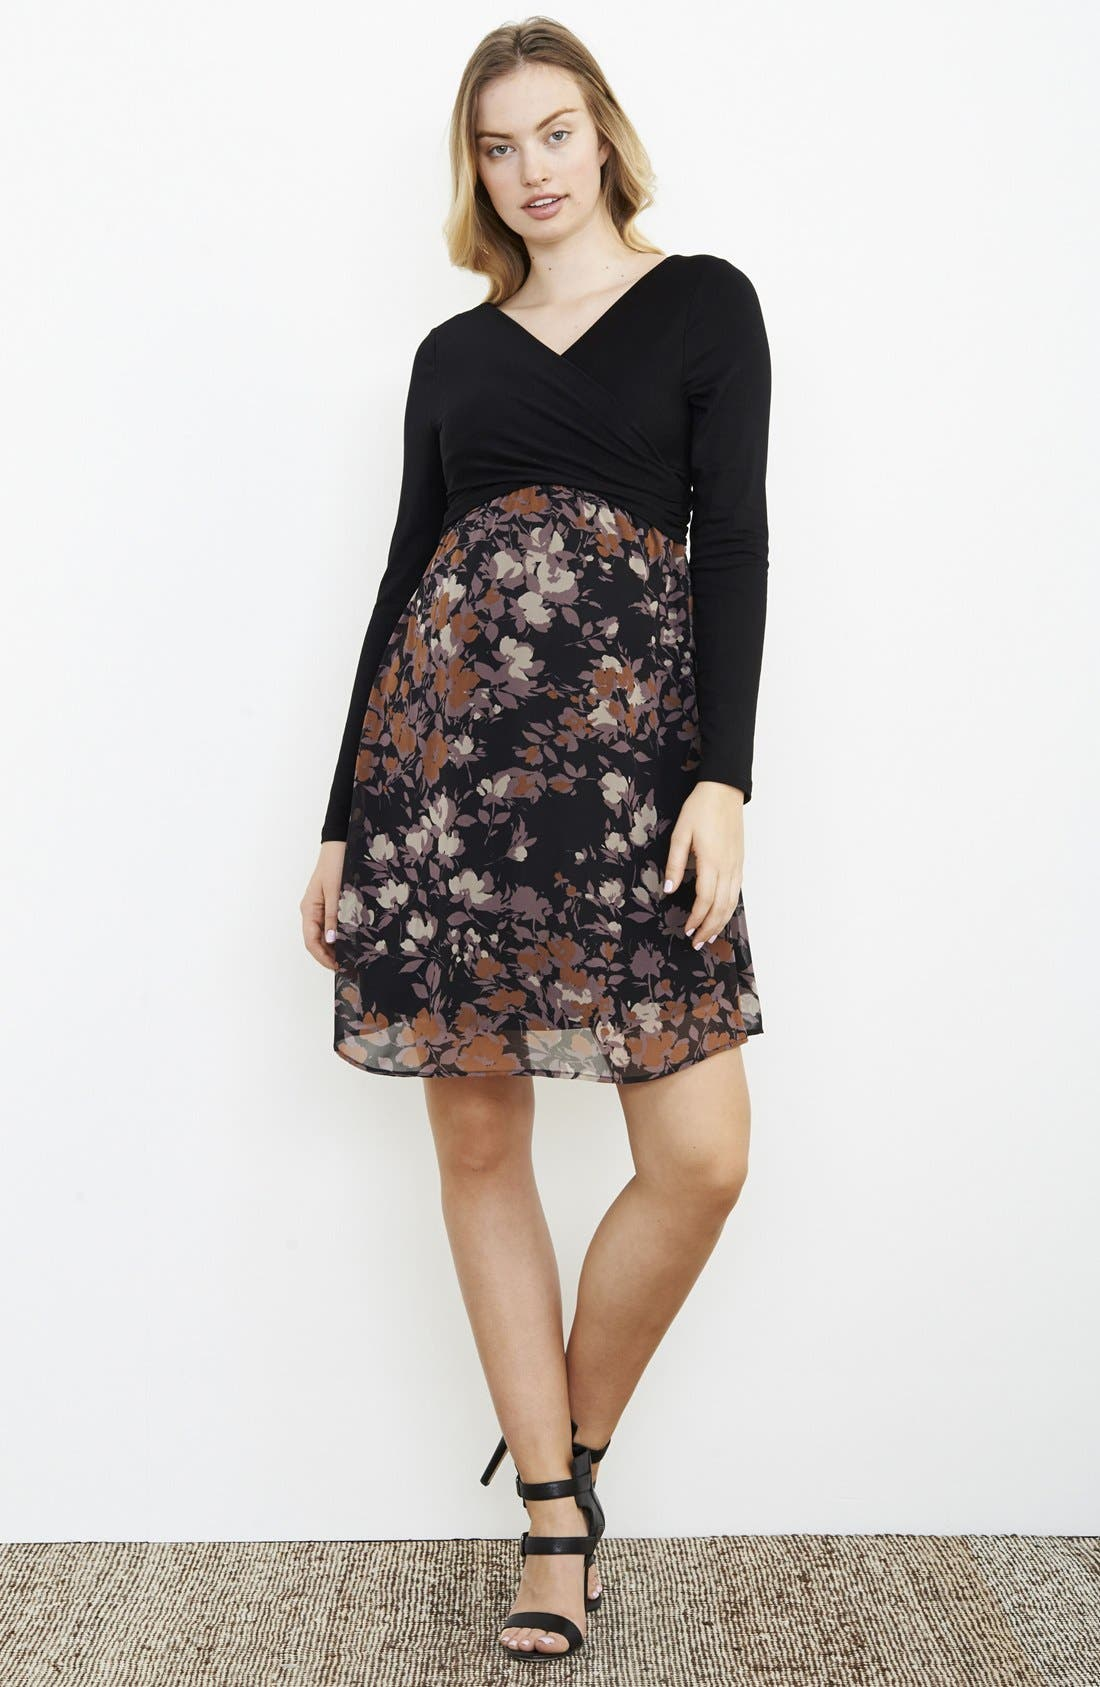 MATERNAL AMERICA Crossover Maternity Dress, Main, color, BLACK/ LILAC FLORAL PRINT